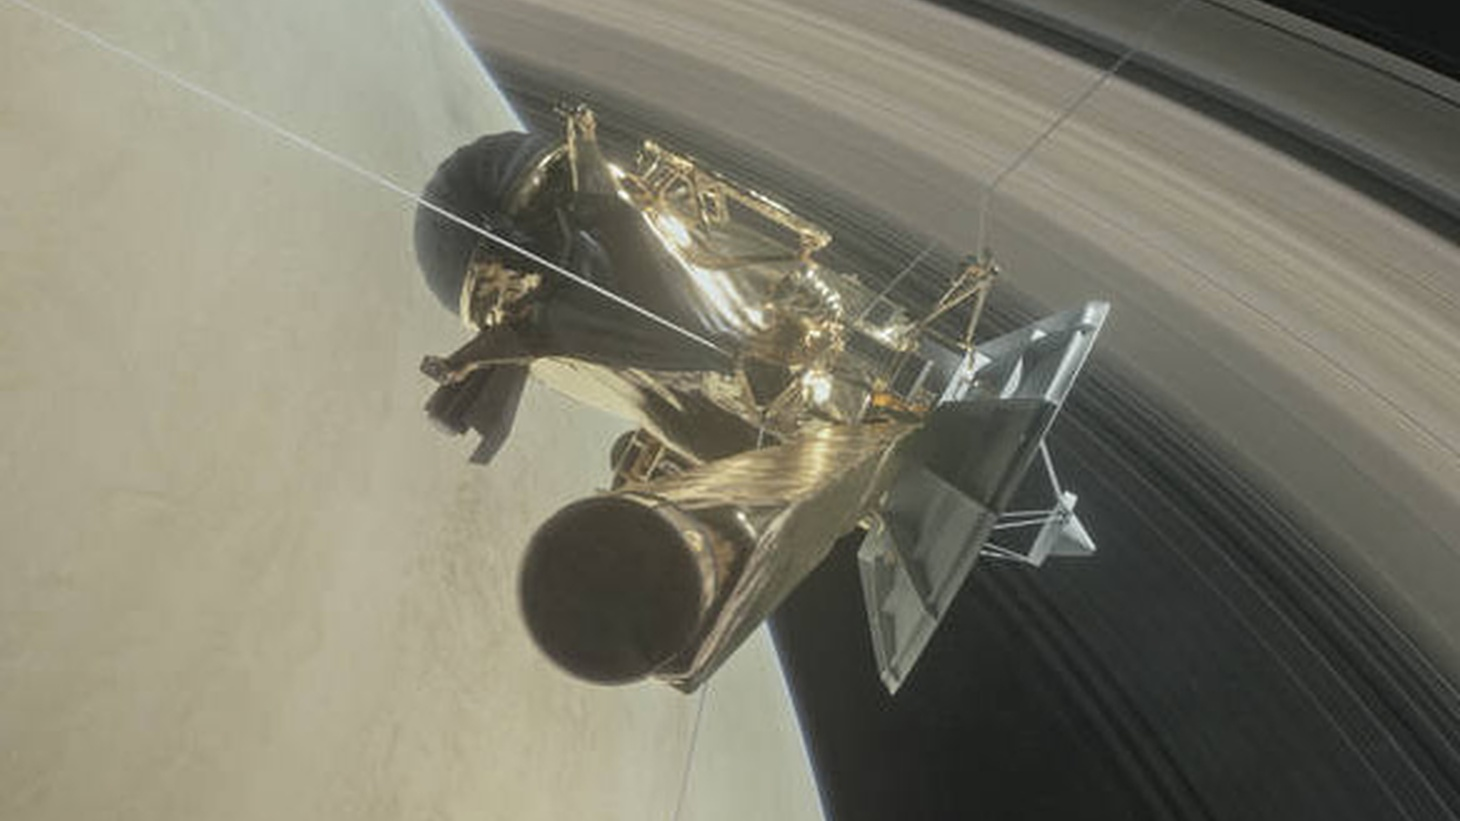 The  Cassini  spacecraft is one of NASA's greatest achievements… exploration of the planet Saturn, its moons and its rings. But all good things much come to an end. After 20 years in space, Cassini is running out of fuel.